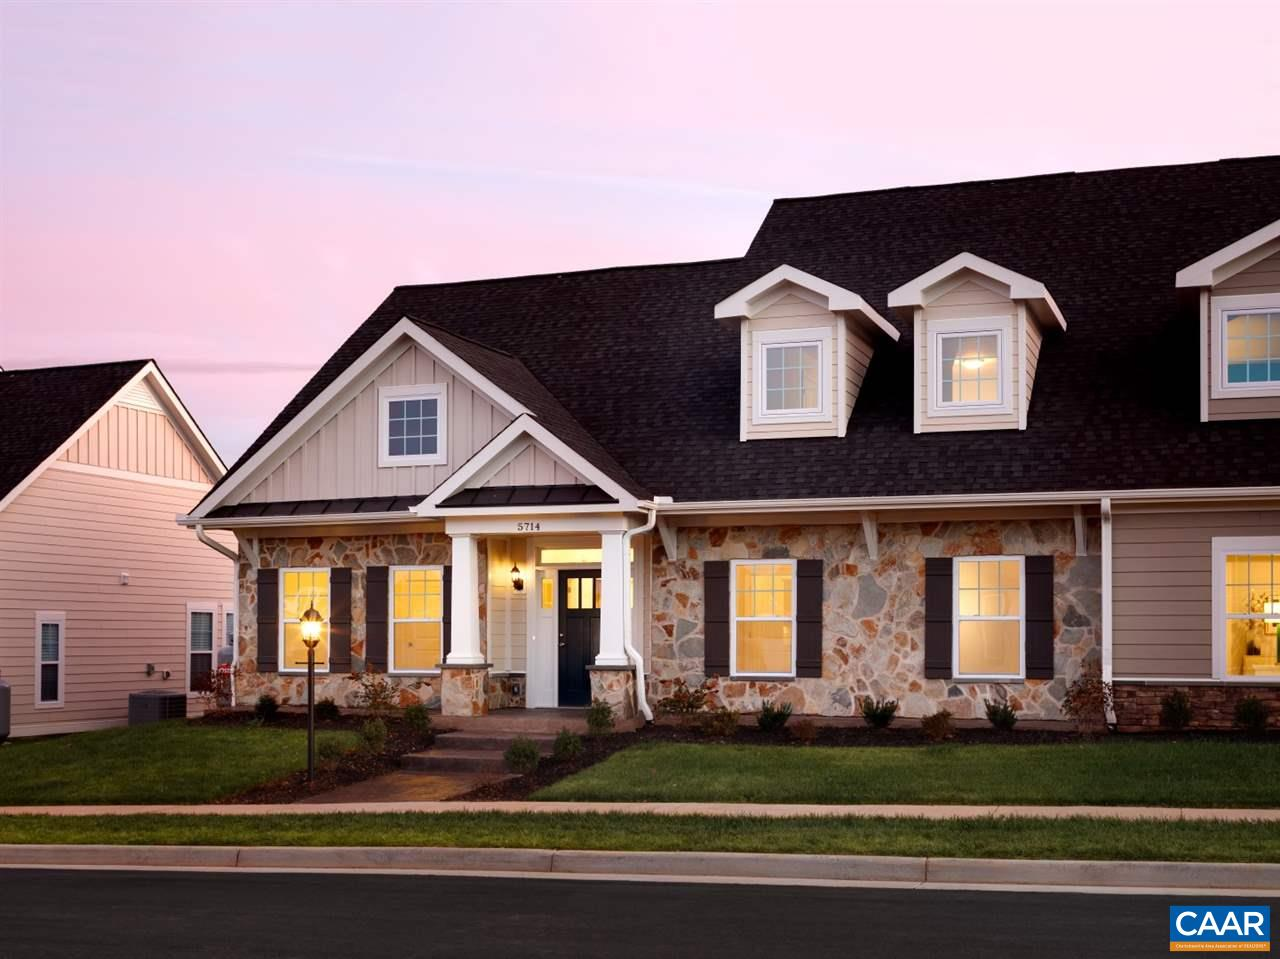 Single Family Home for Sale at 5714 UPLAND Drive 5714 UPLAND Drive Crozet, Virginia 22932 United States